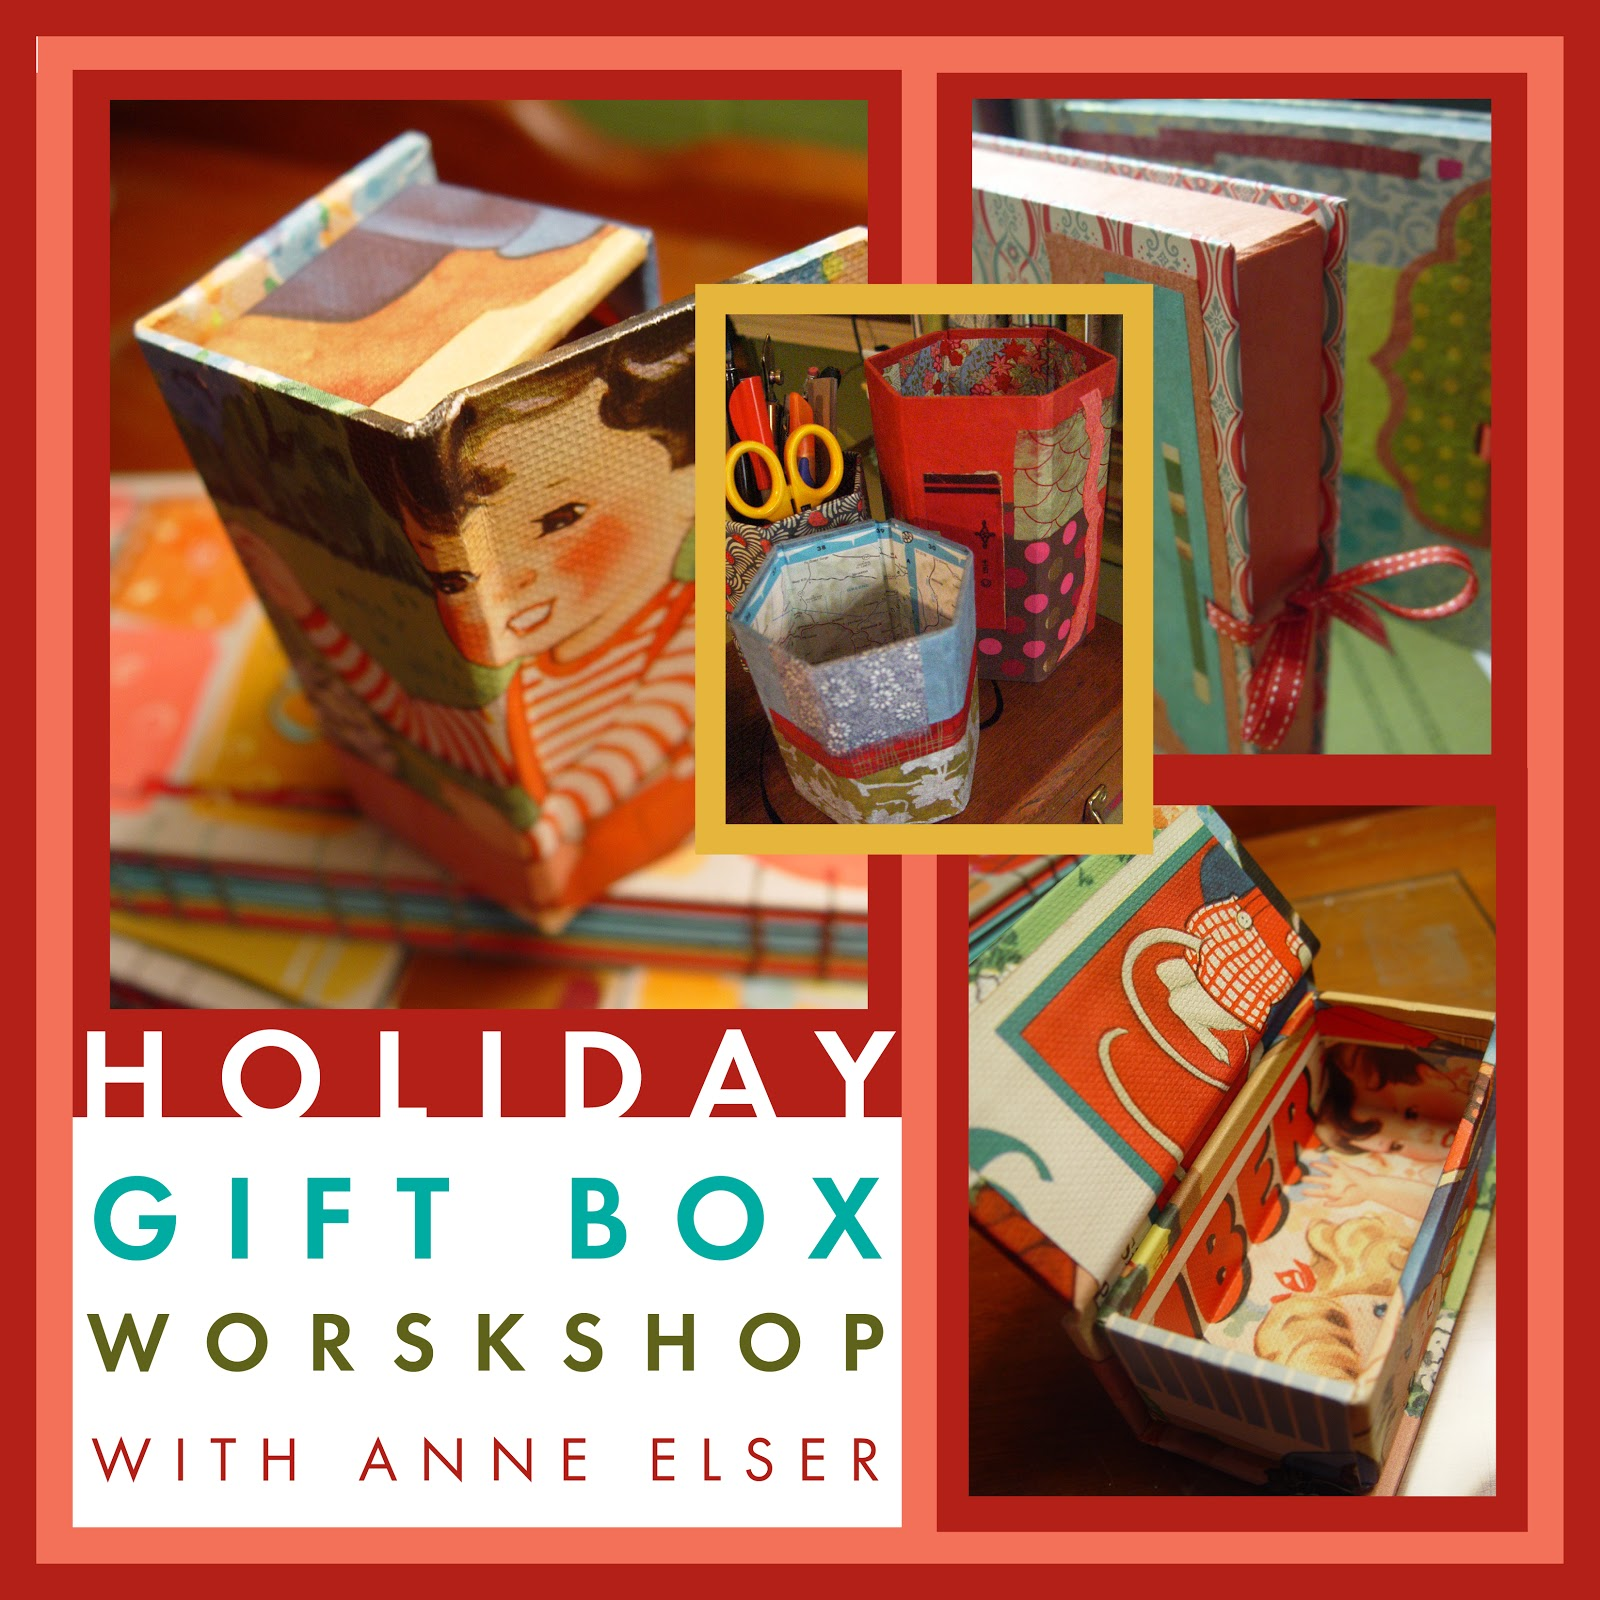 anne elser holiday gift box weekend workshop starts this. Black Bedroom Furniture Sets. Home Design Ideas